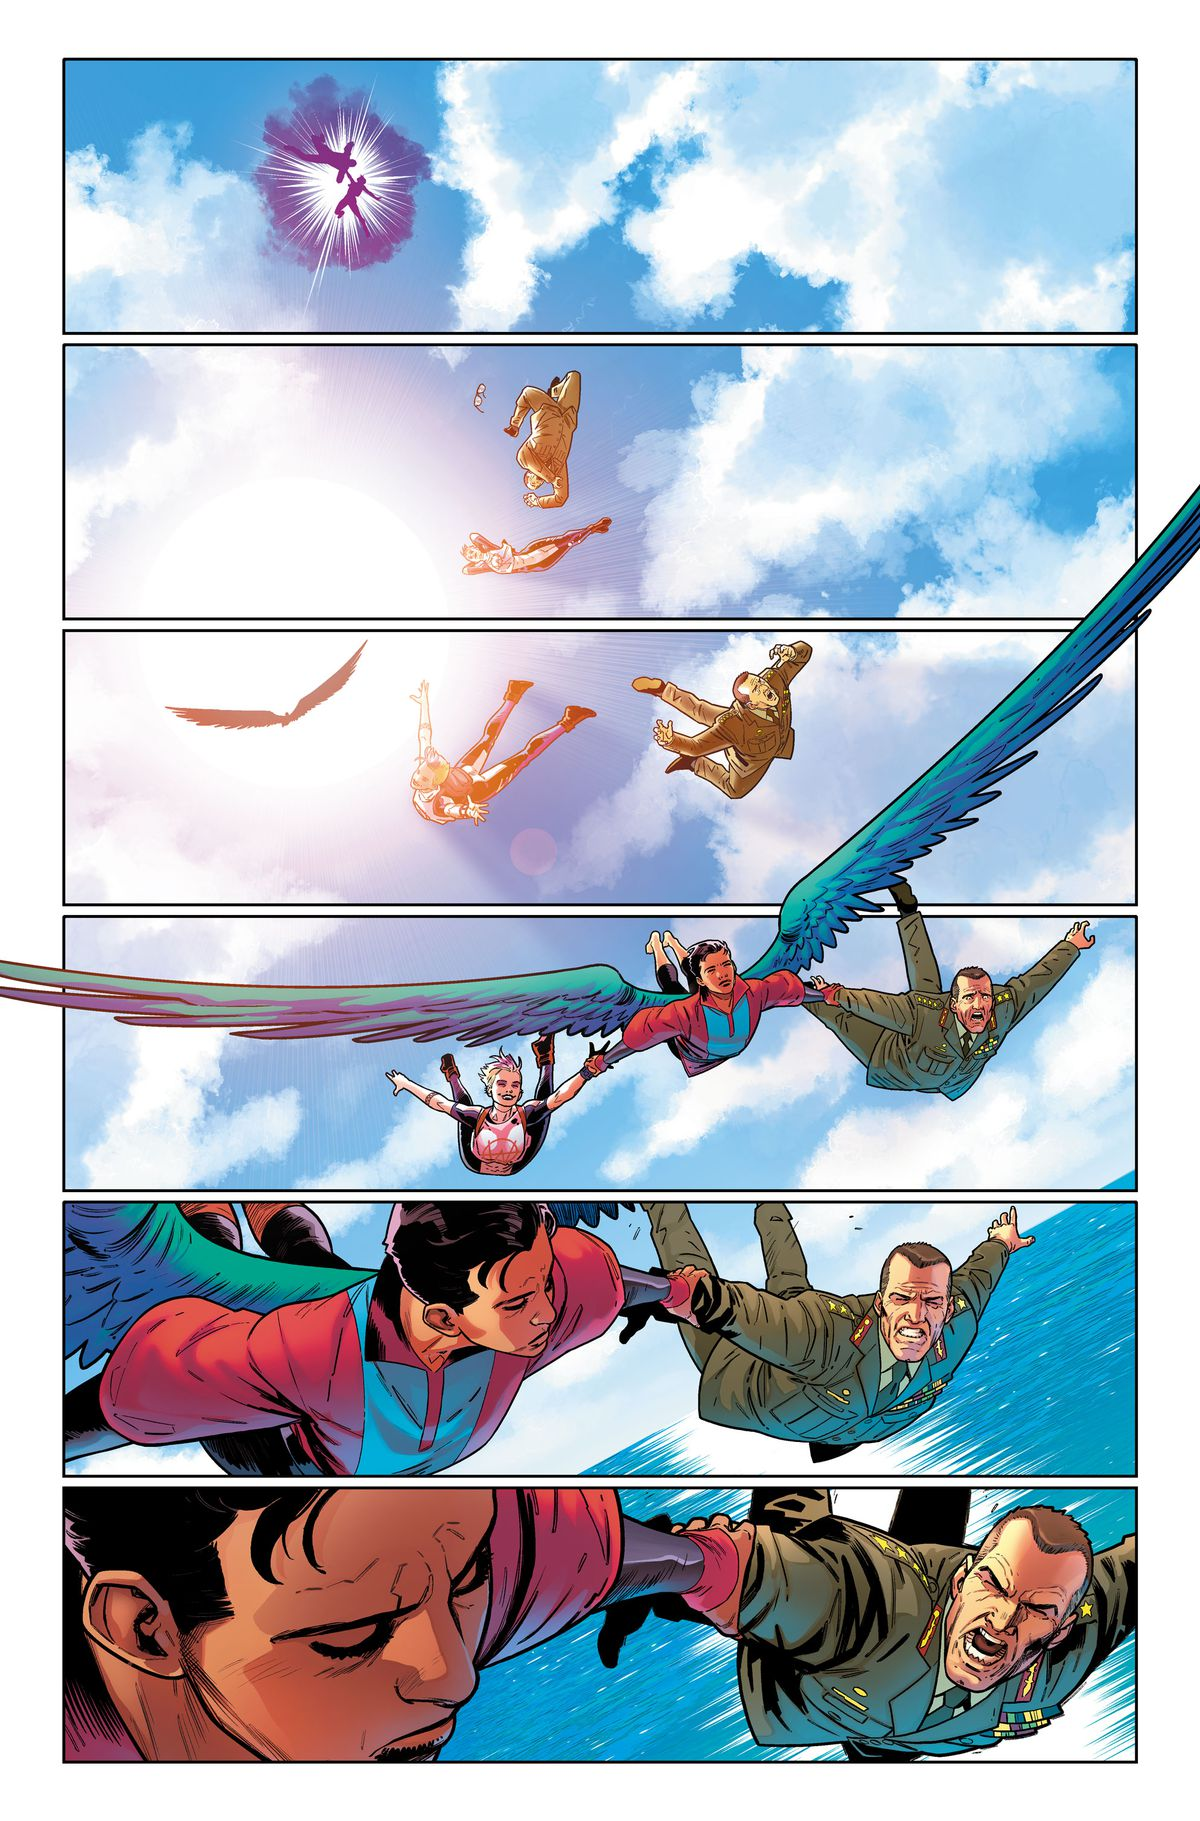 Blink drops out of a portal in the sky with a uniformed man. The Aerie swoops in and grabs both of them, in an unlettered page from Suicide Squad #1, DC Comics (2019).